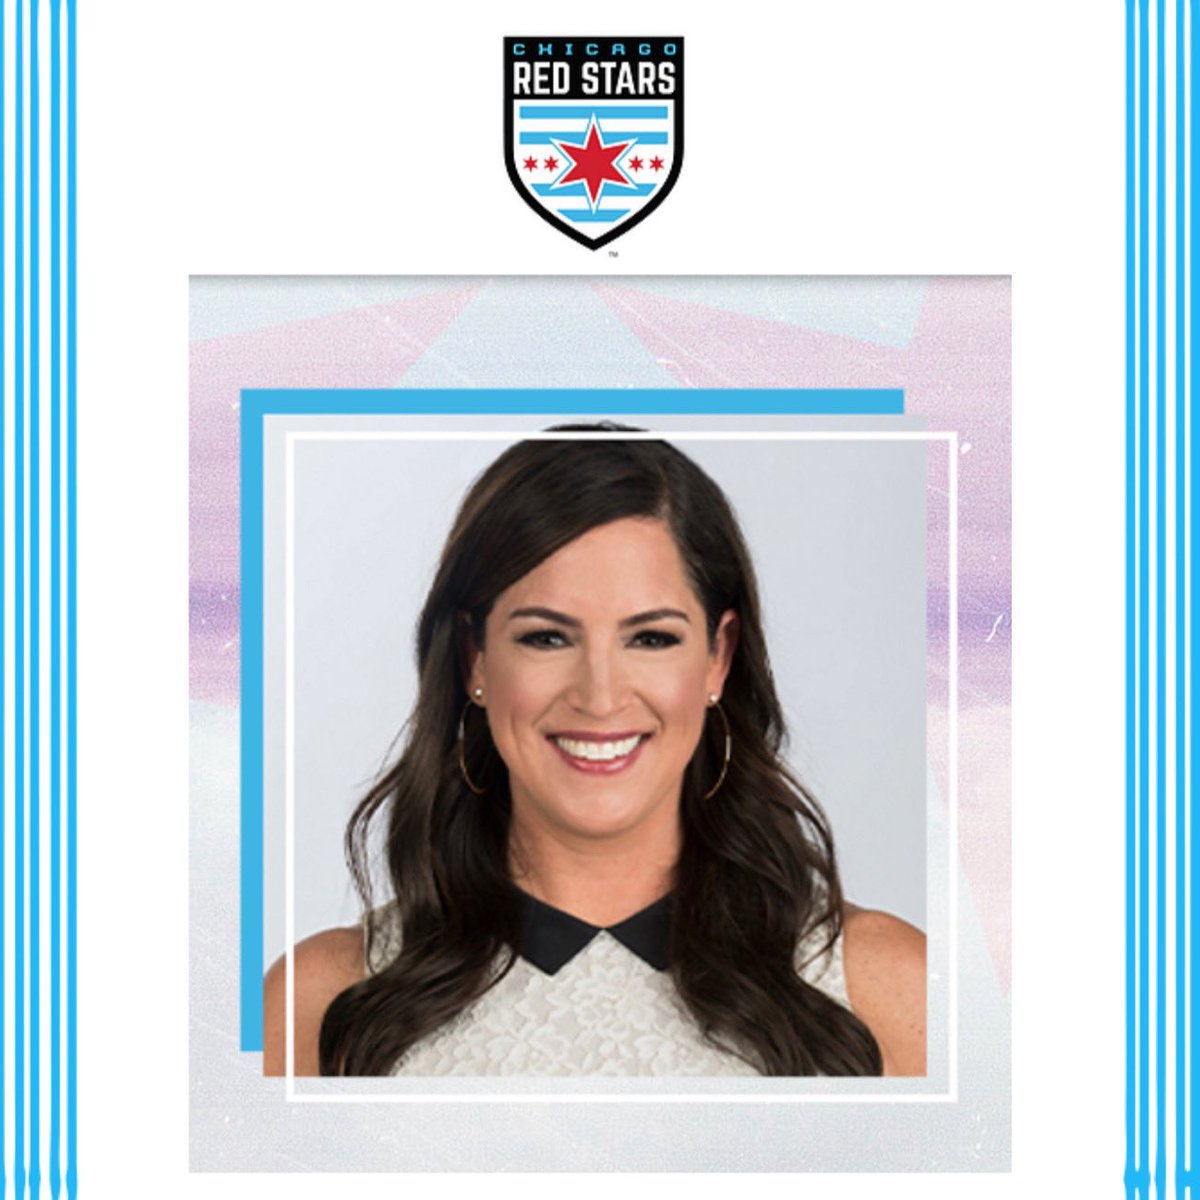 It's finally here! Announce day! I'm so proud & excited to share that I'm part of the new ownership group for the @ChicagoRedStars of the @NWSL, a team I've cheered on for years. I never could've dreamed I'd have the opportunity to be the owner of a pro sports team...WILD. (1/)